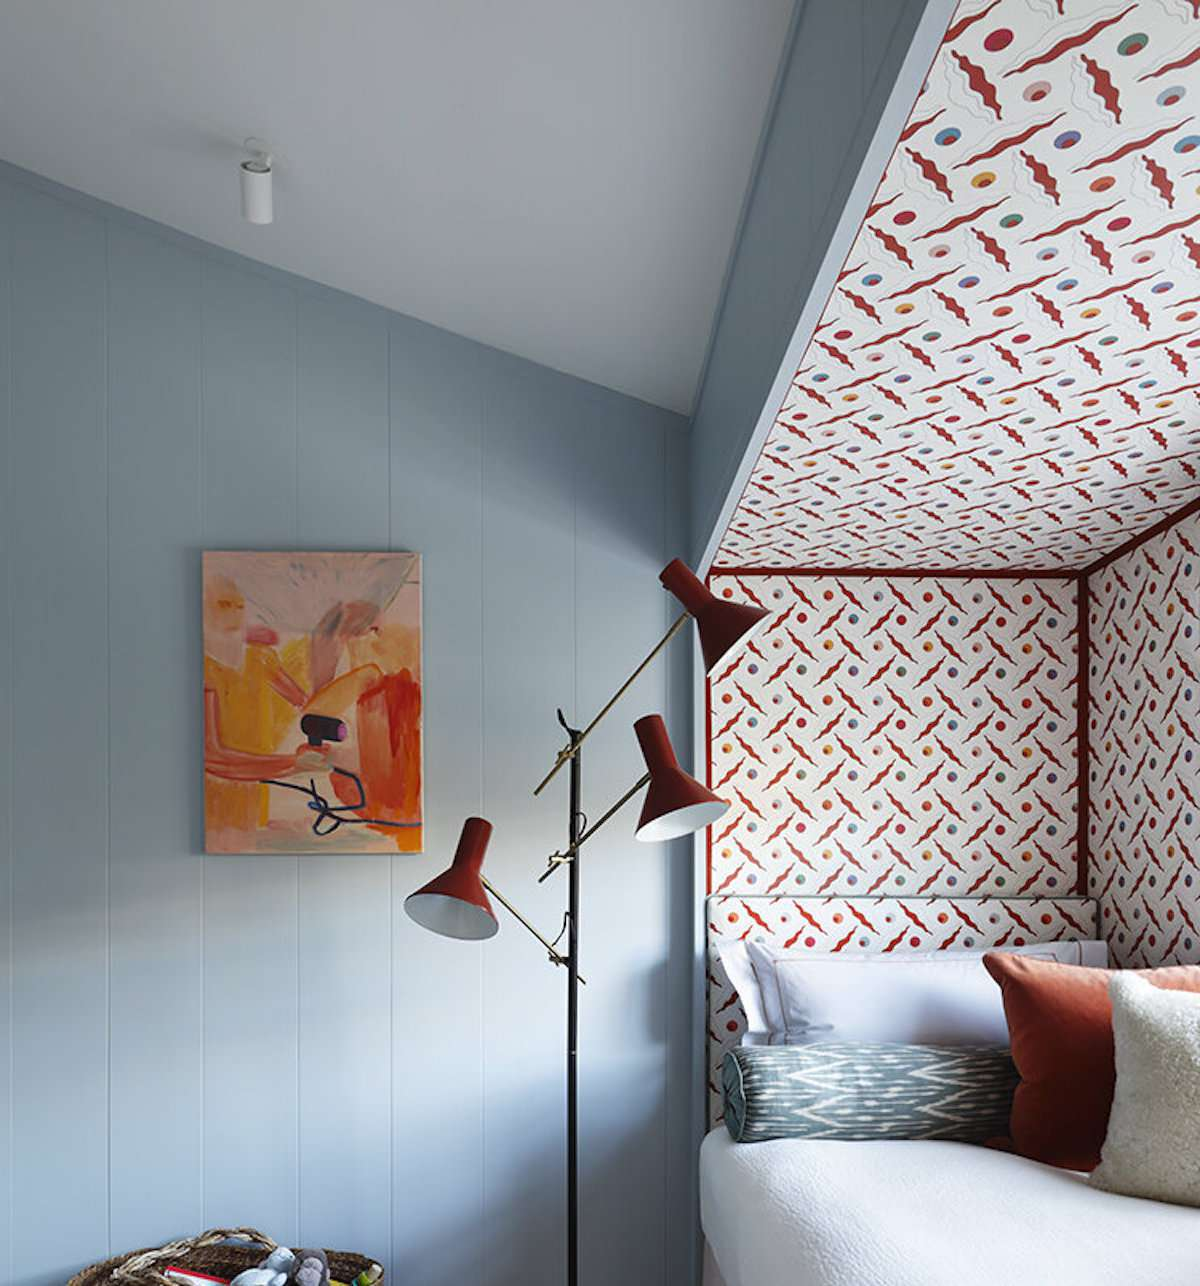 bedroom with pale blue walls, red and white pattern in nook containing a bed, modern red lamp